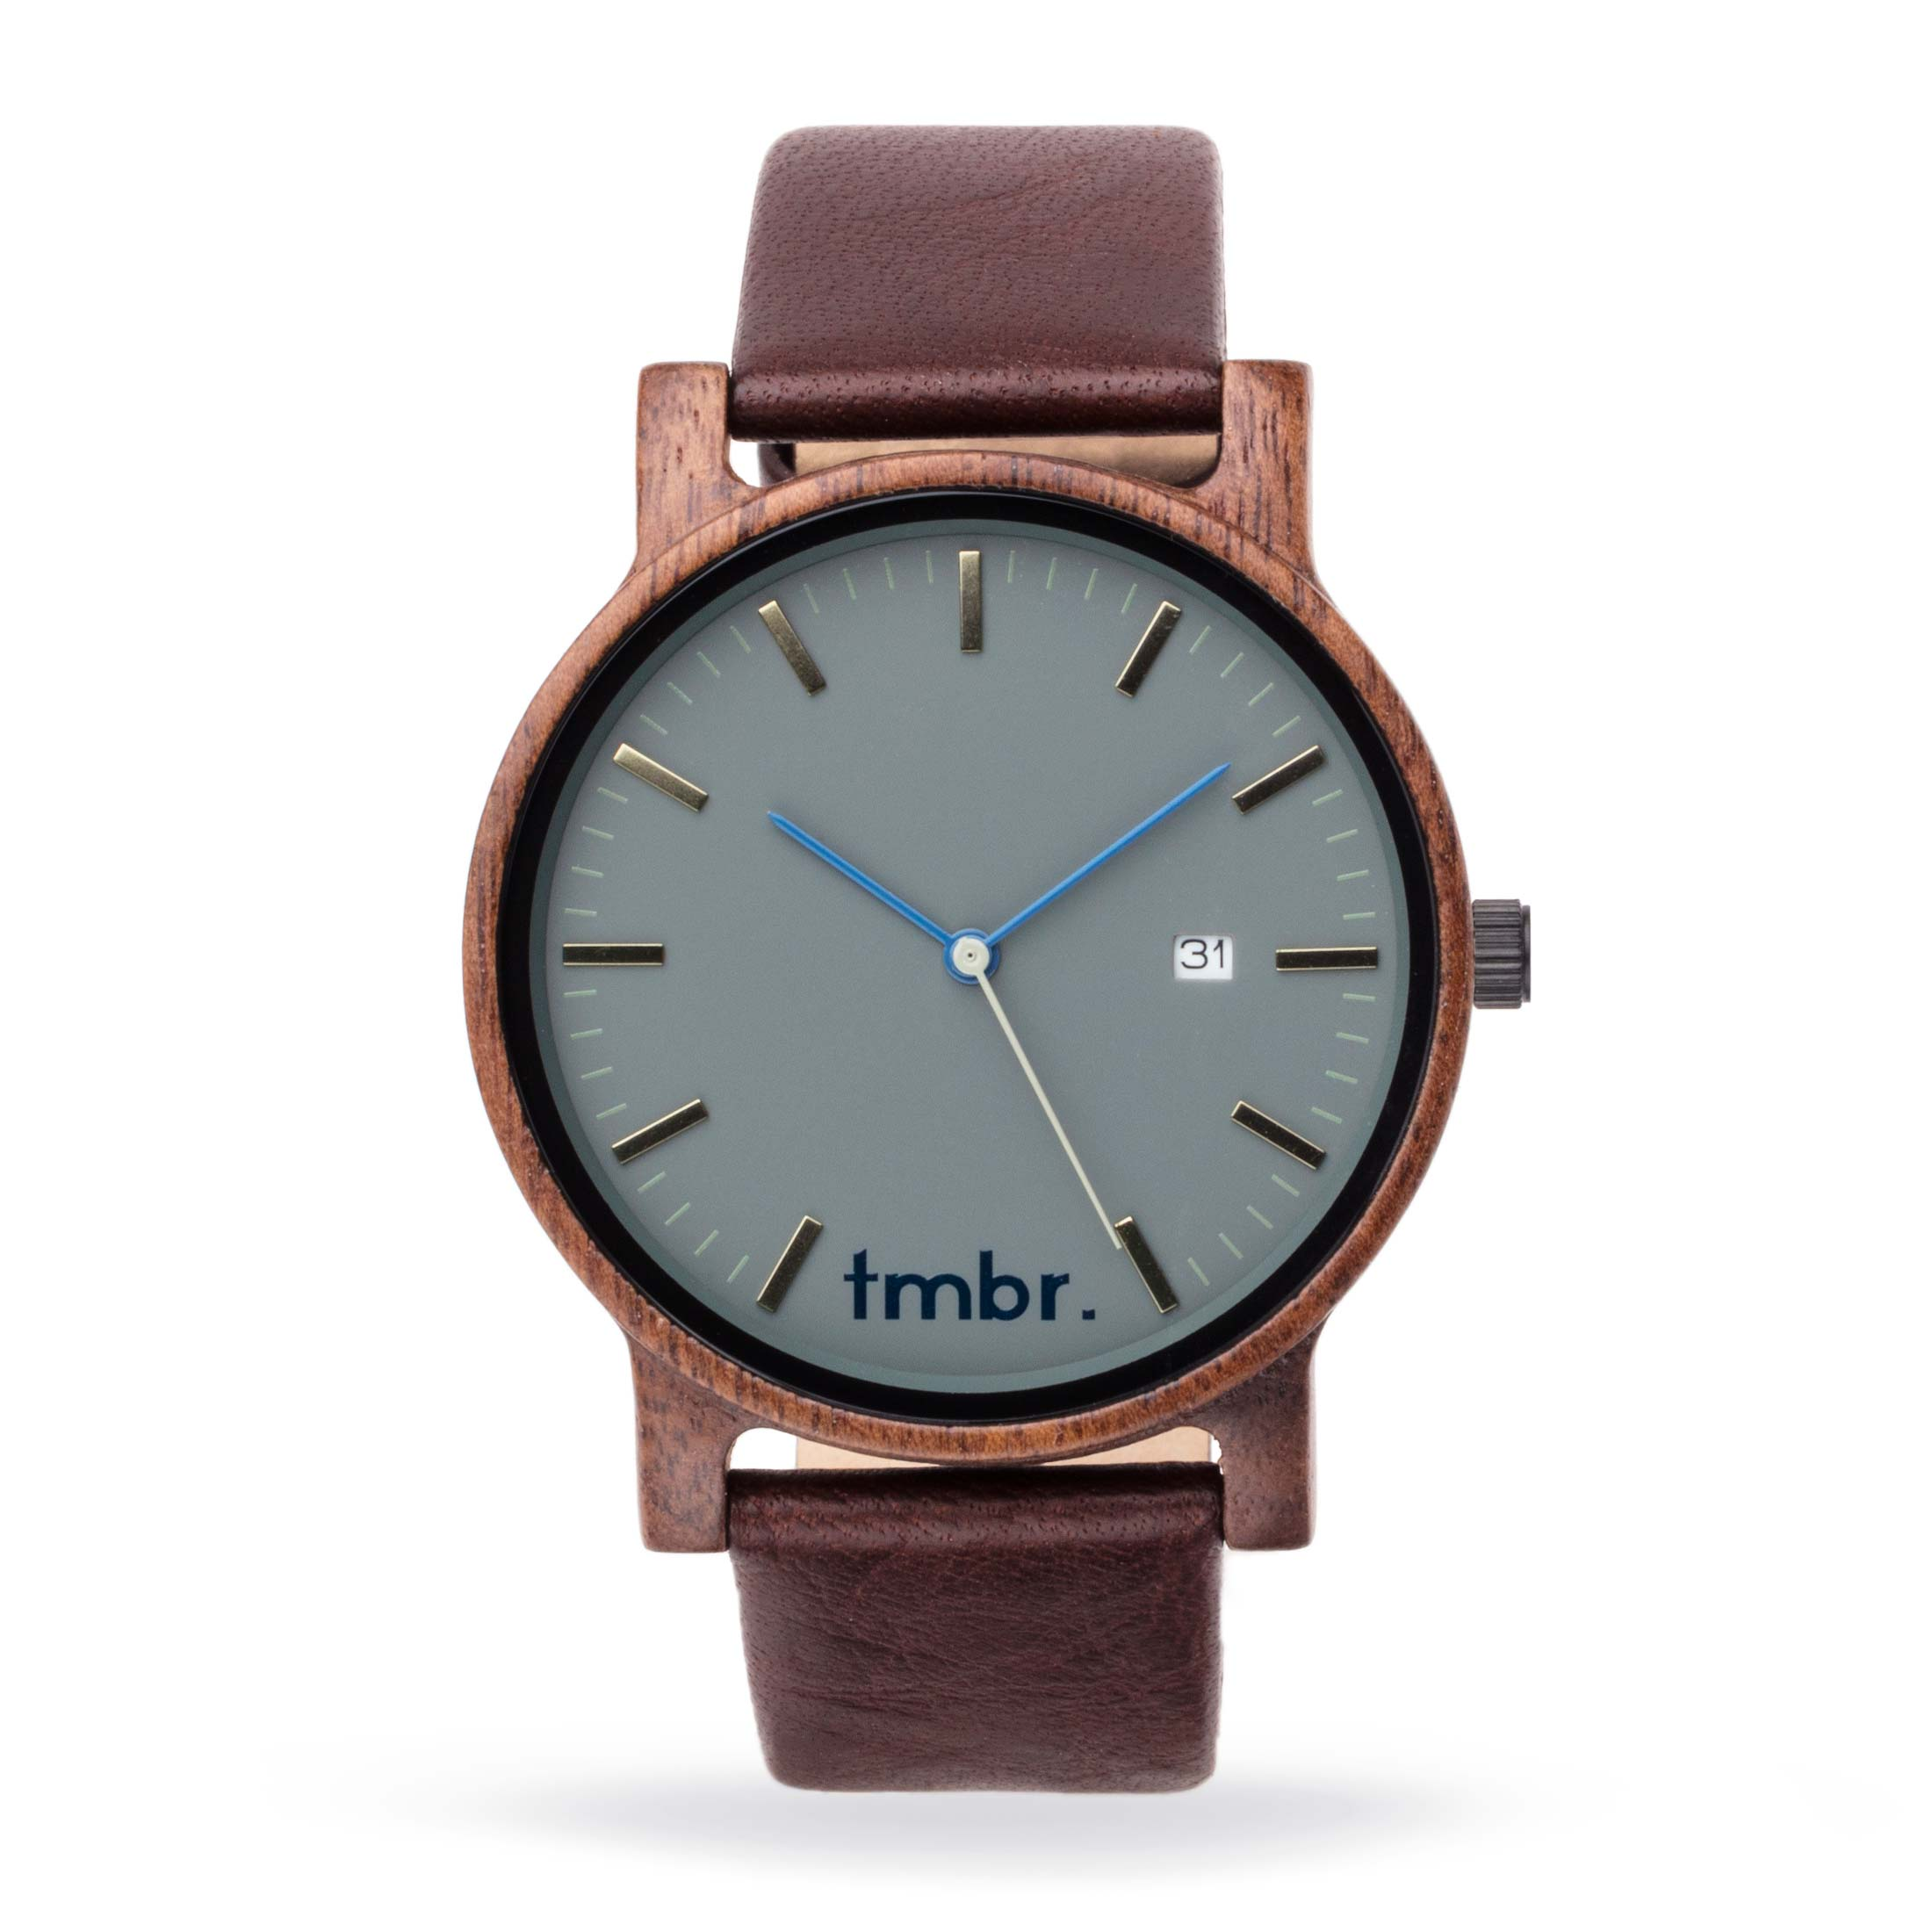 Tmbr Journeyman Wooden Watch - Granite Gray